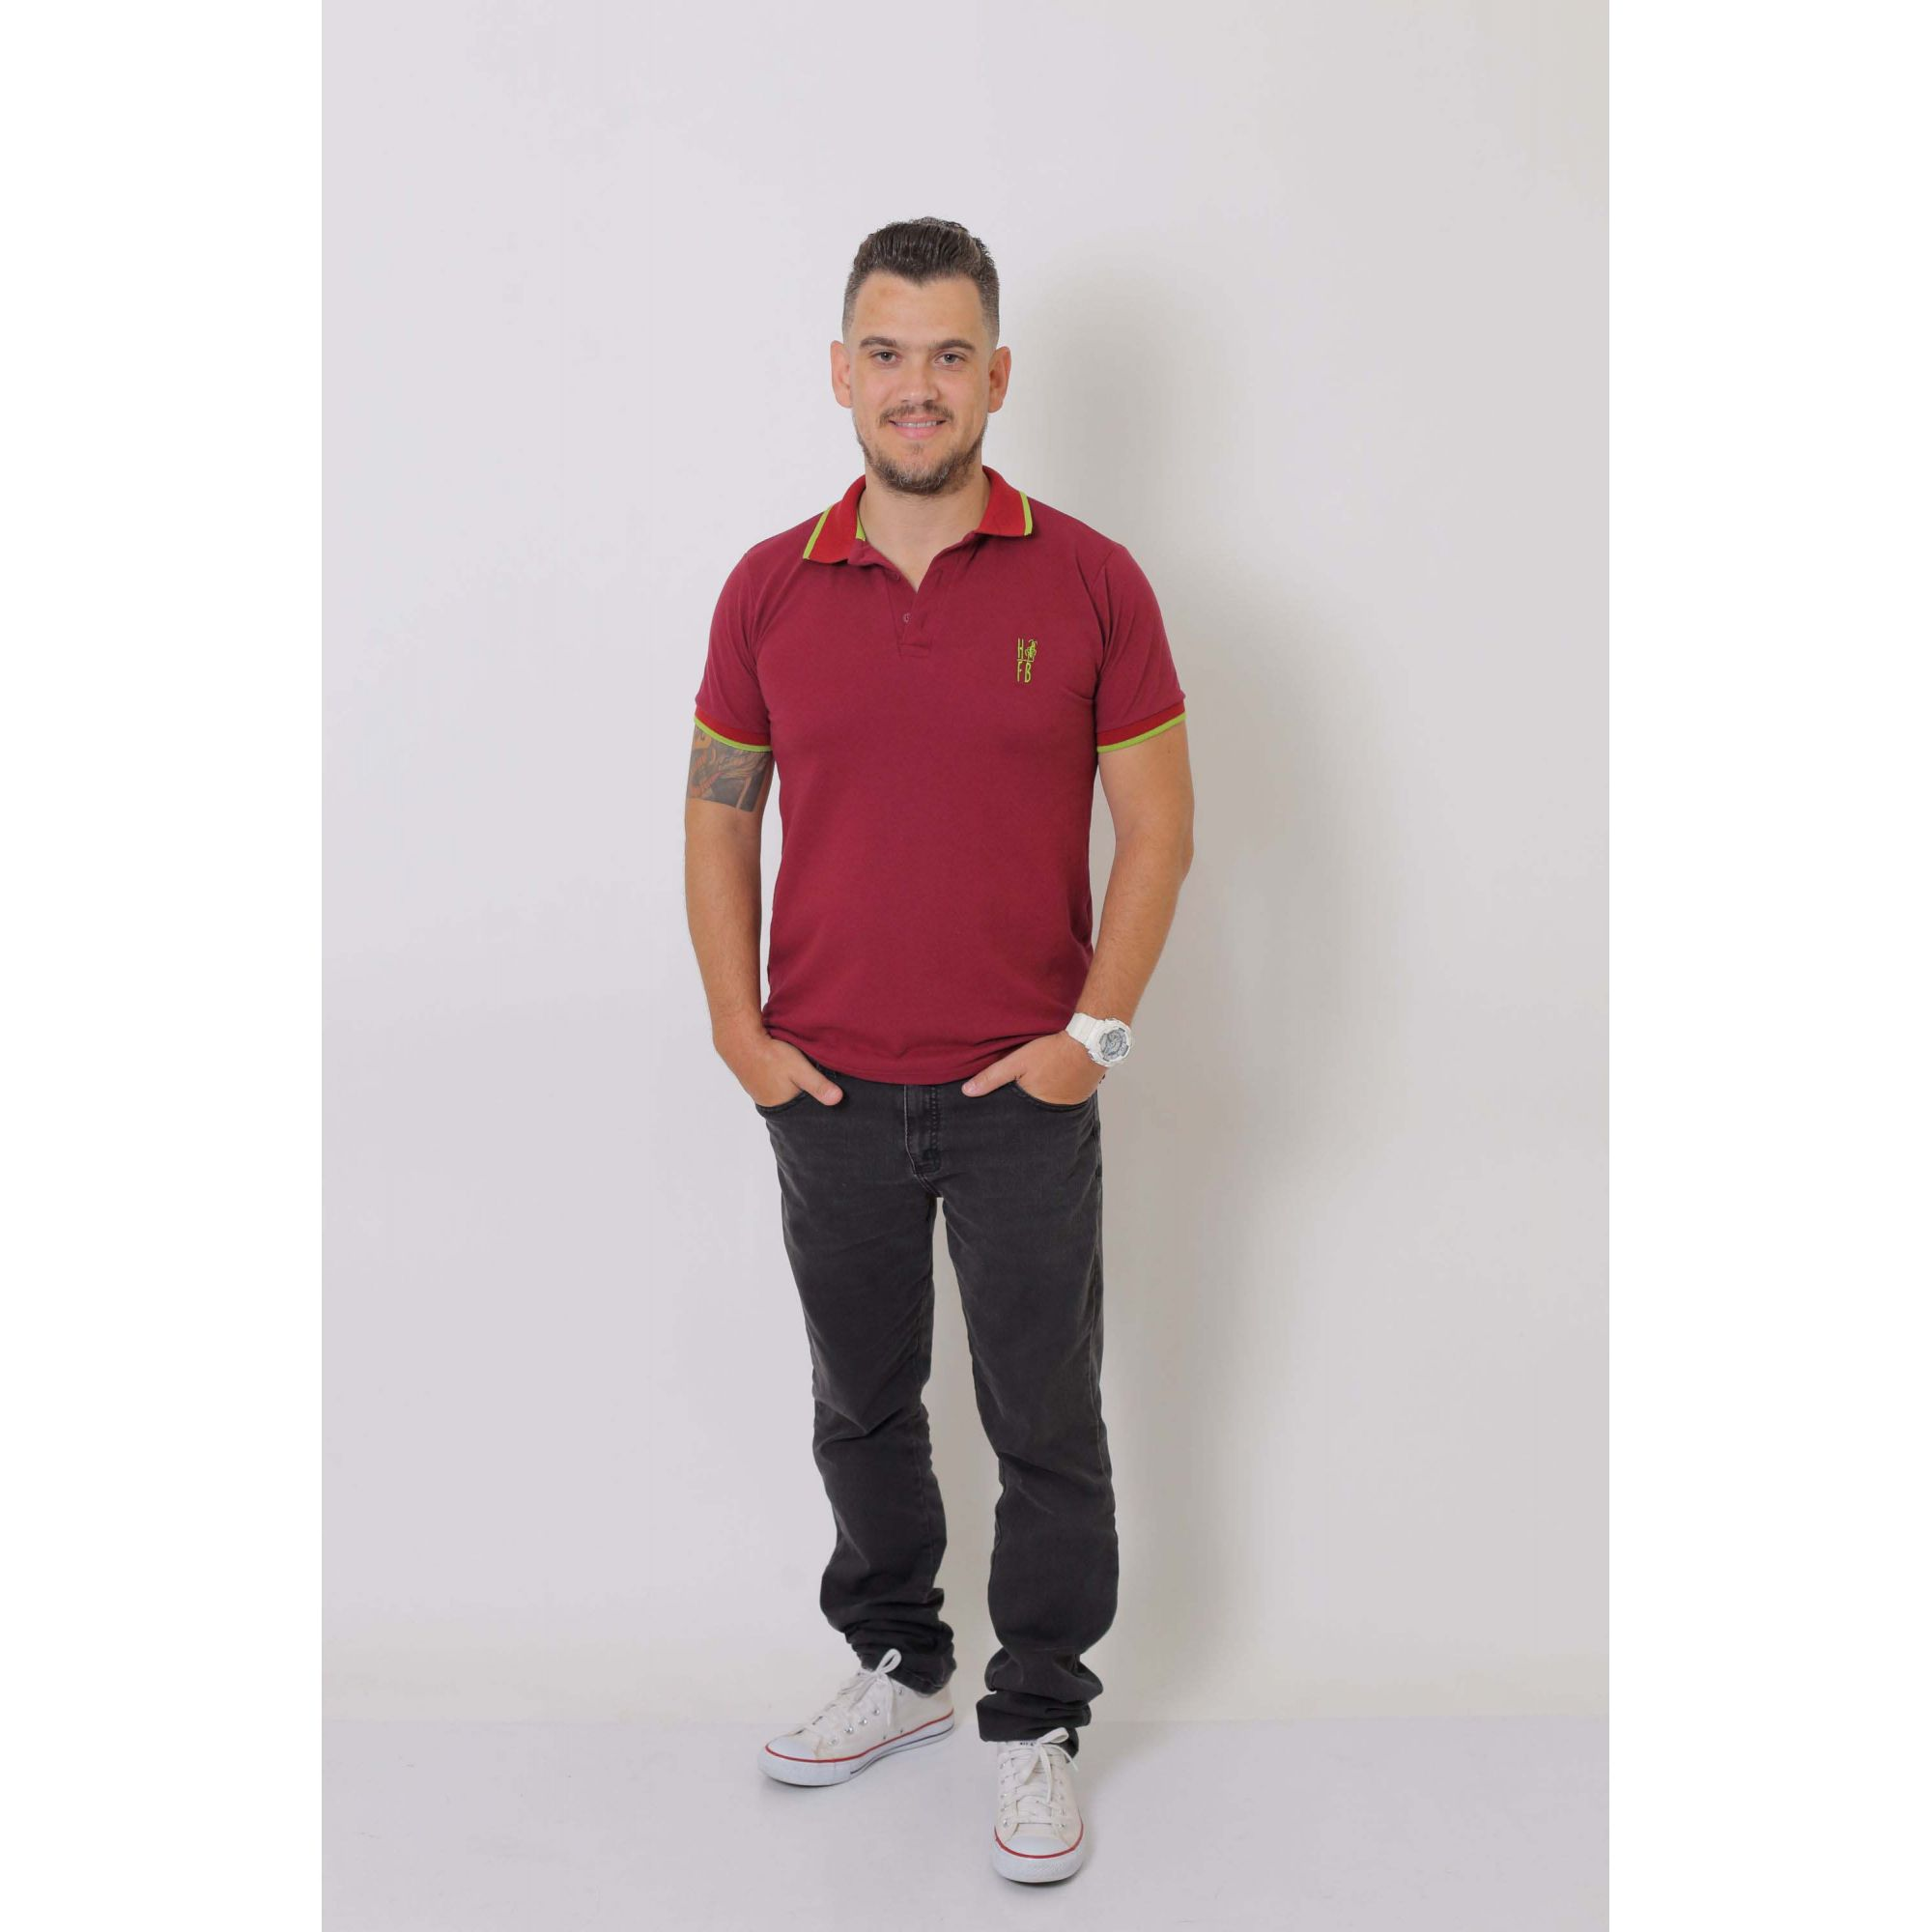 Camisa Polo Bordo  - Heitor Fashion Brazil